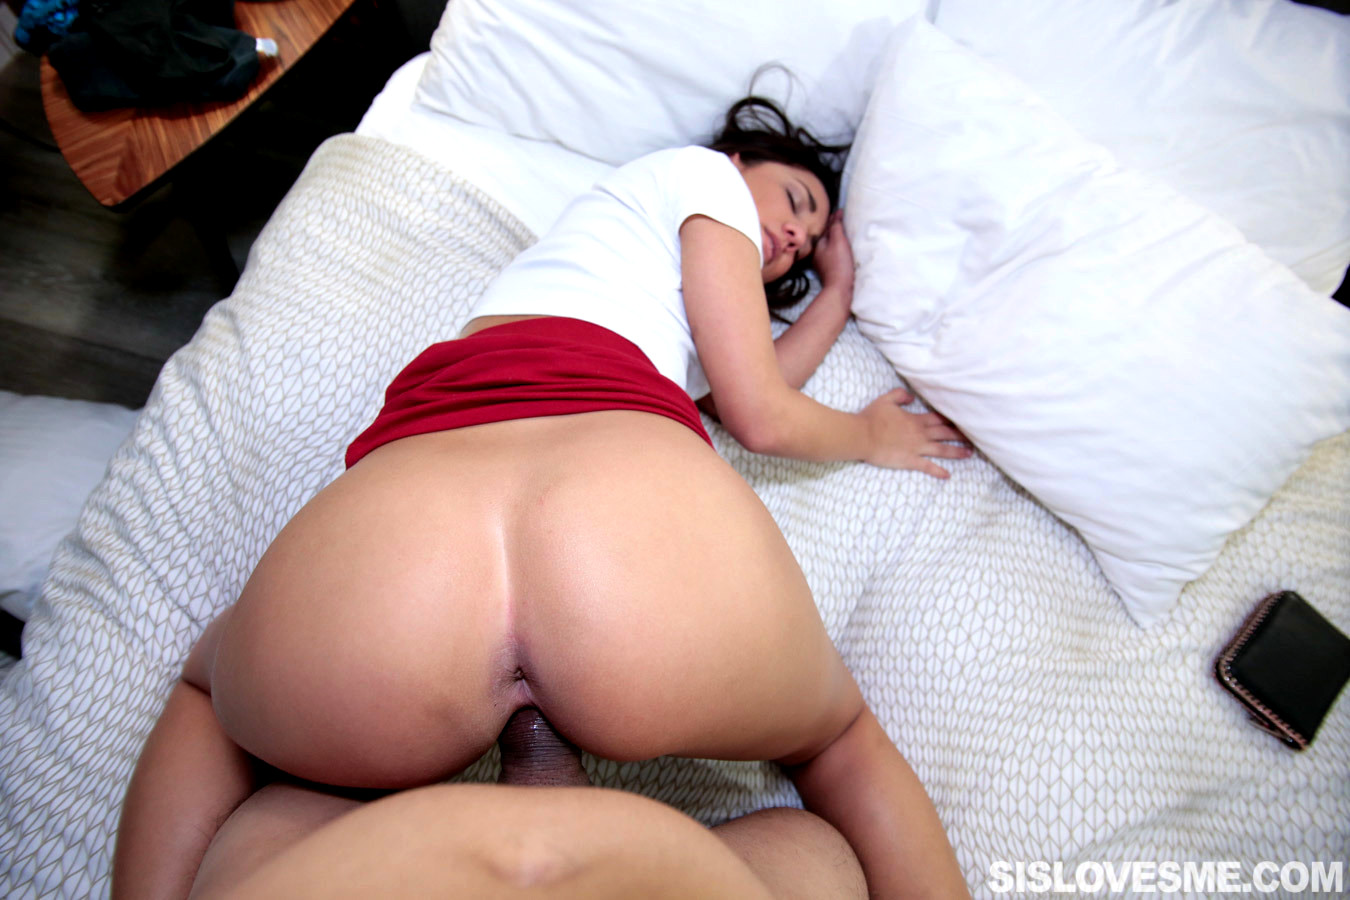 Amara romani loves it in the ass from you 3